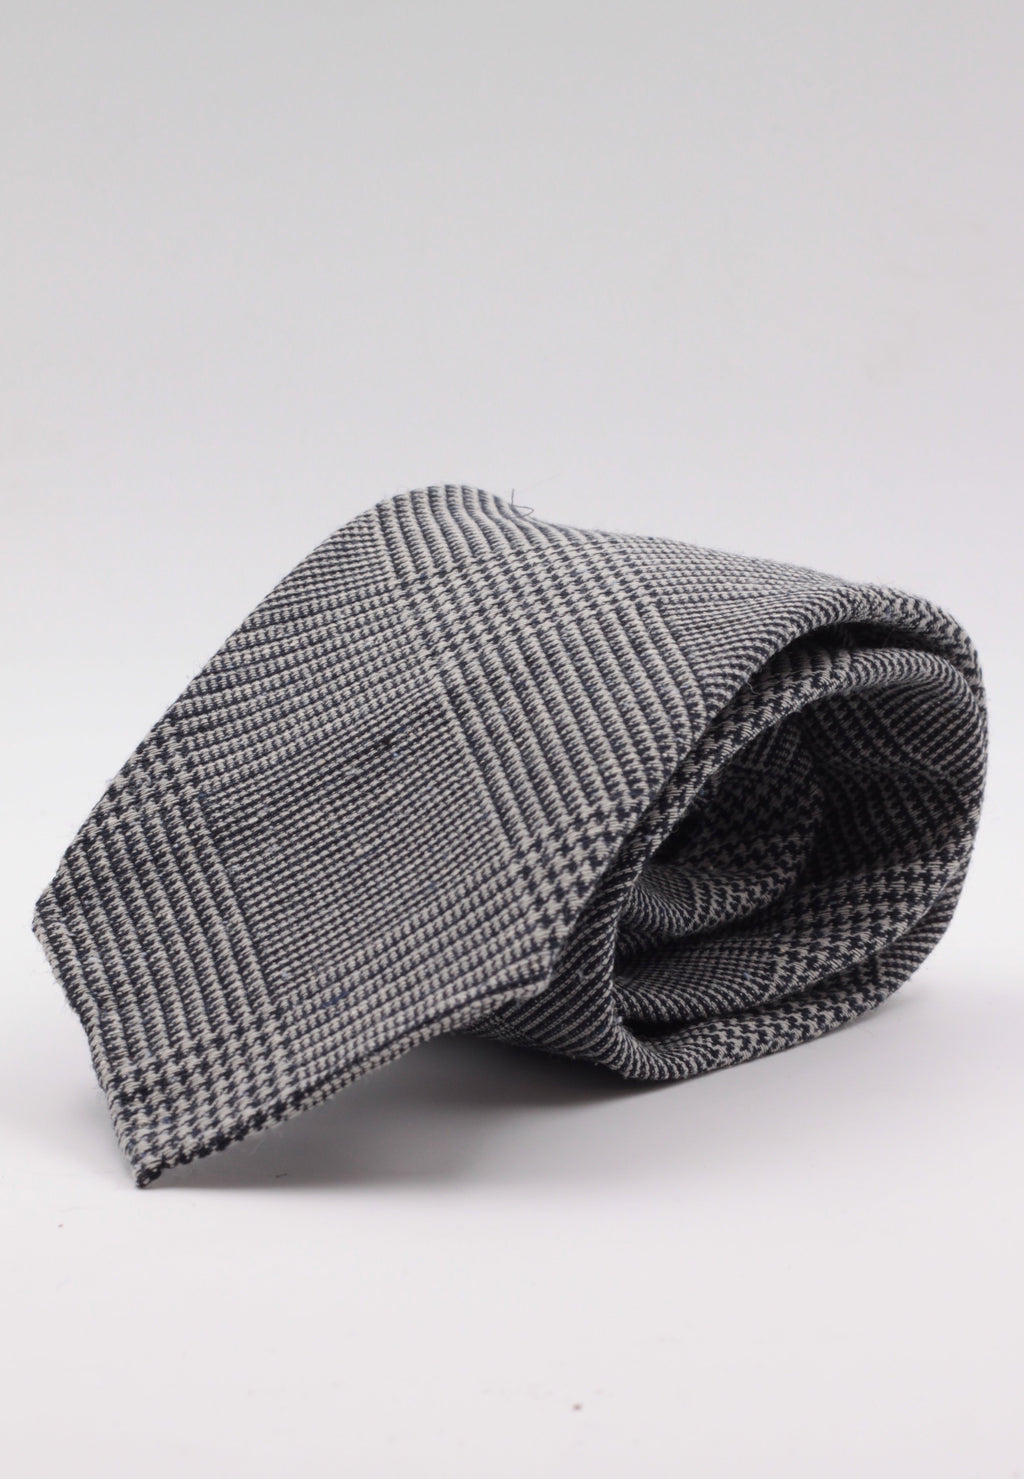 Prince of Wales grey and dark blue tie